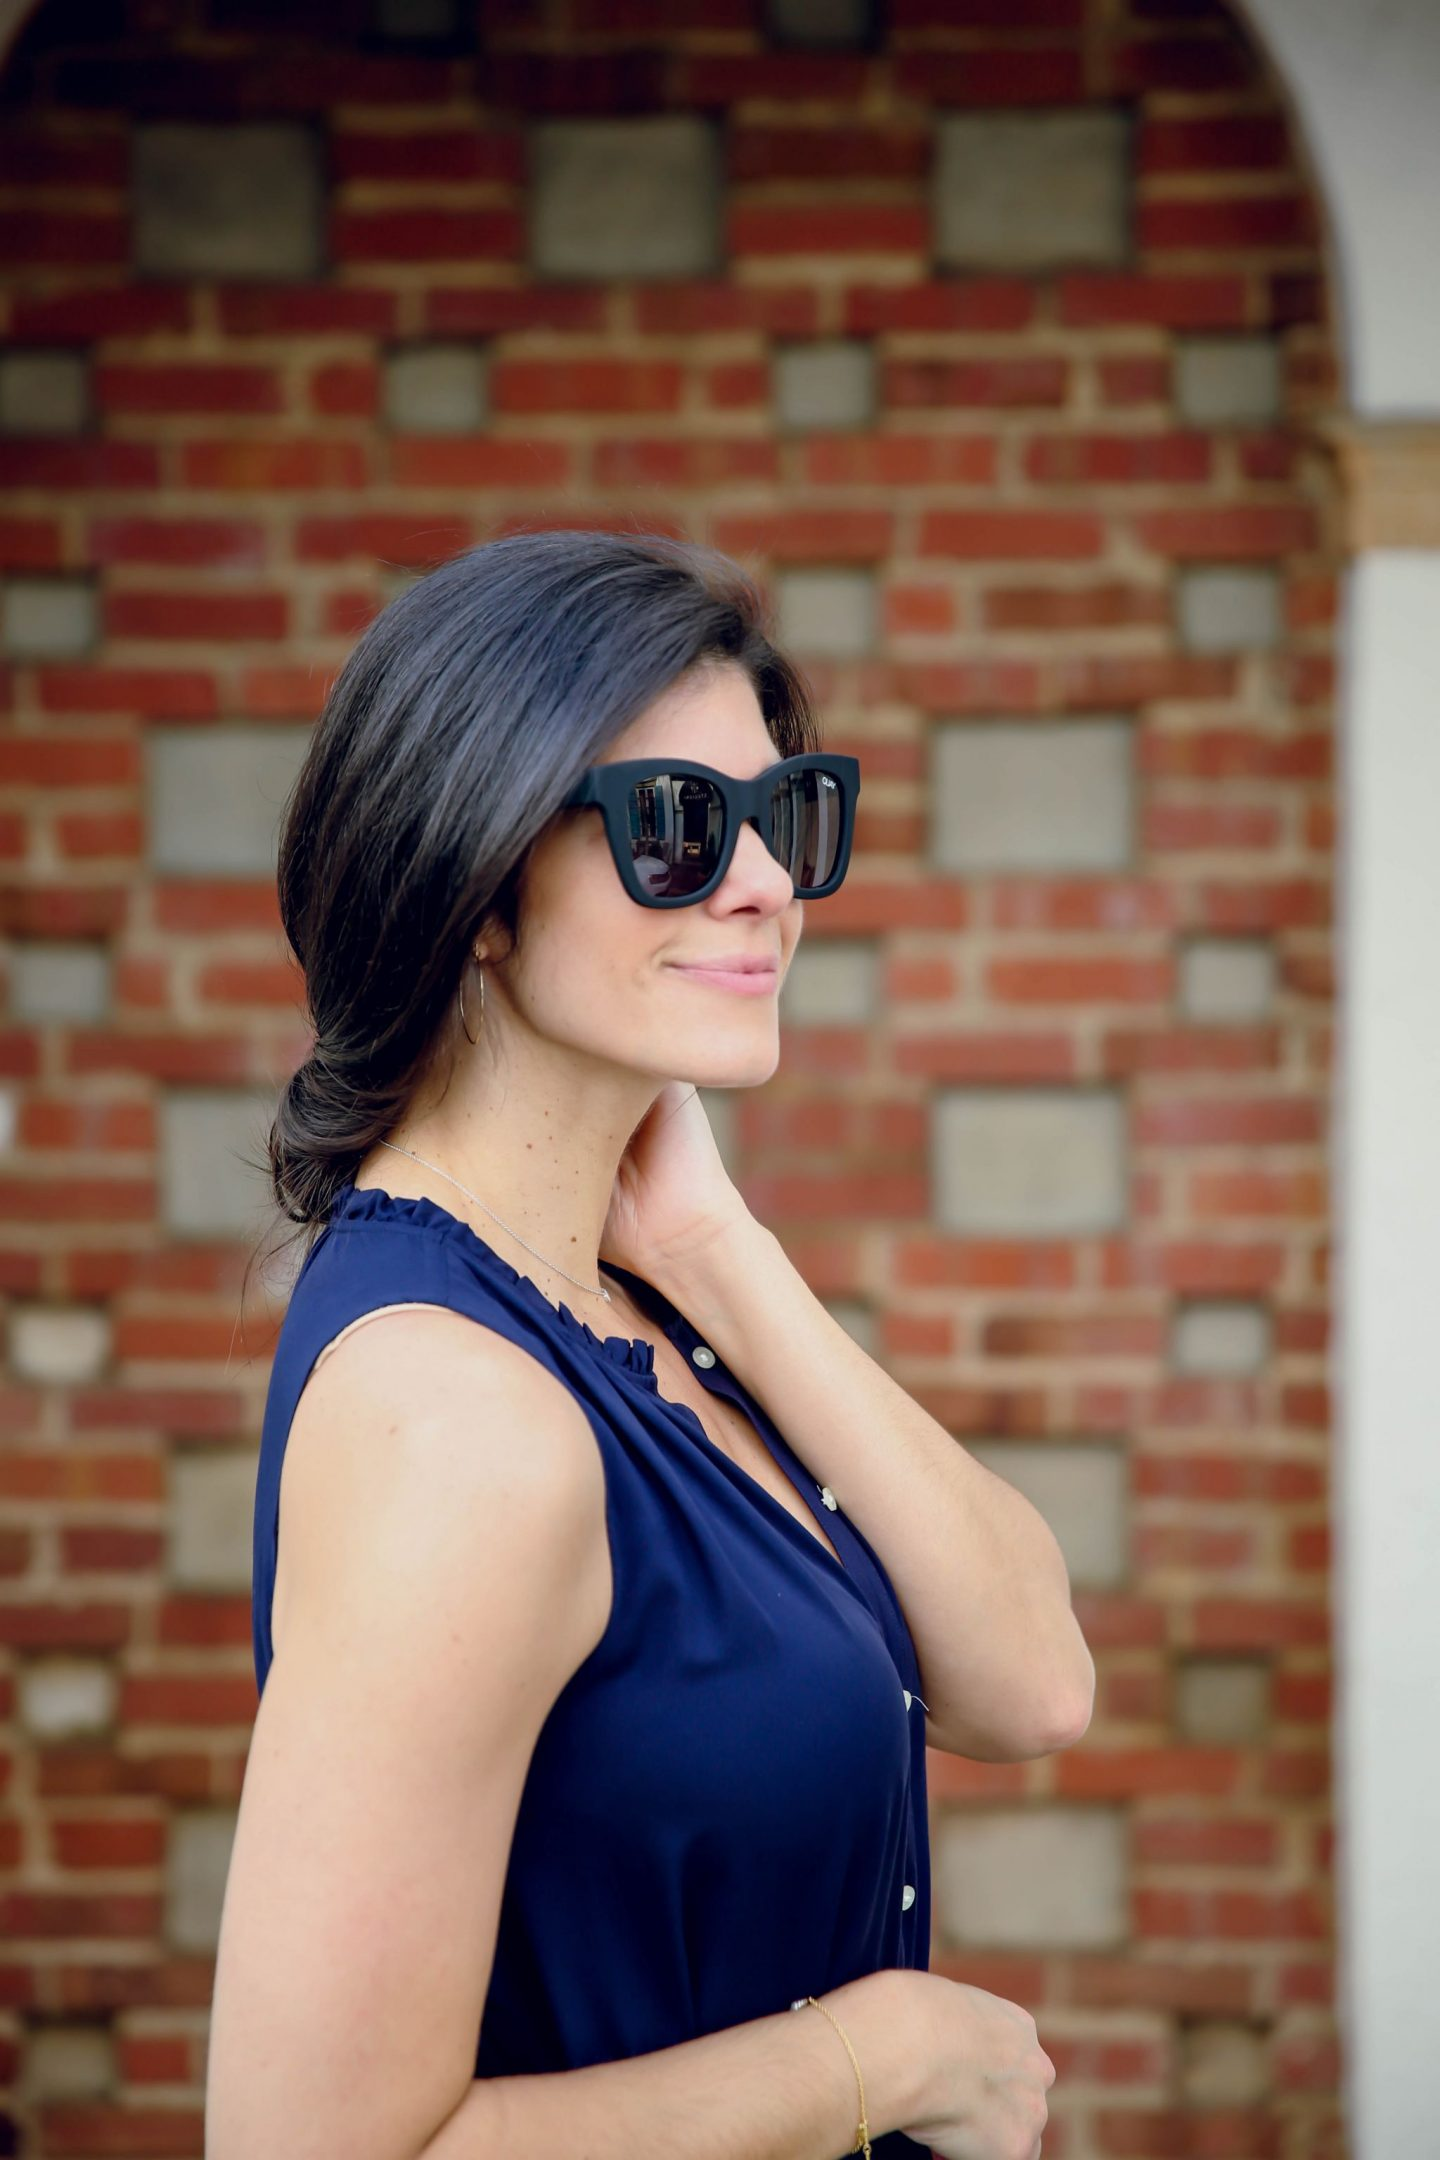 Quay Sunglasses - My Favorite Sunglasses - Lauren Schwaiger